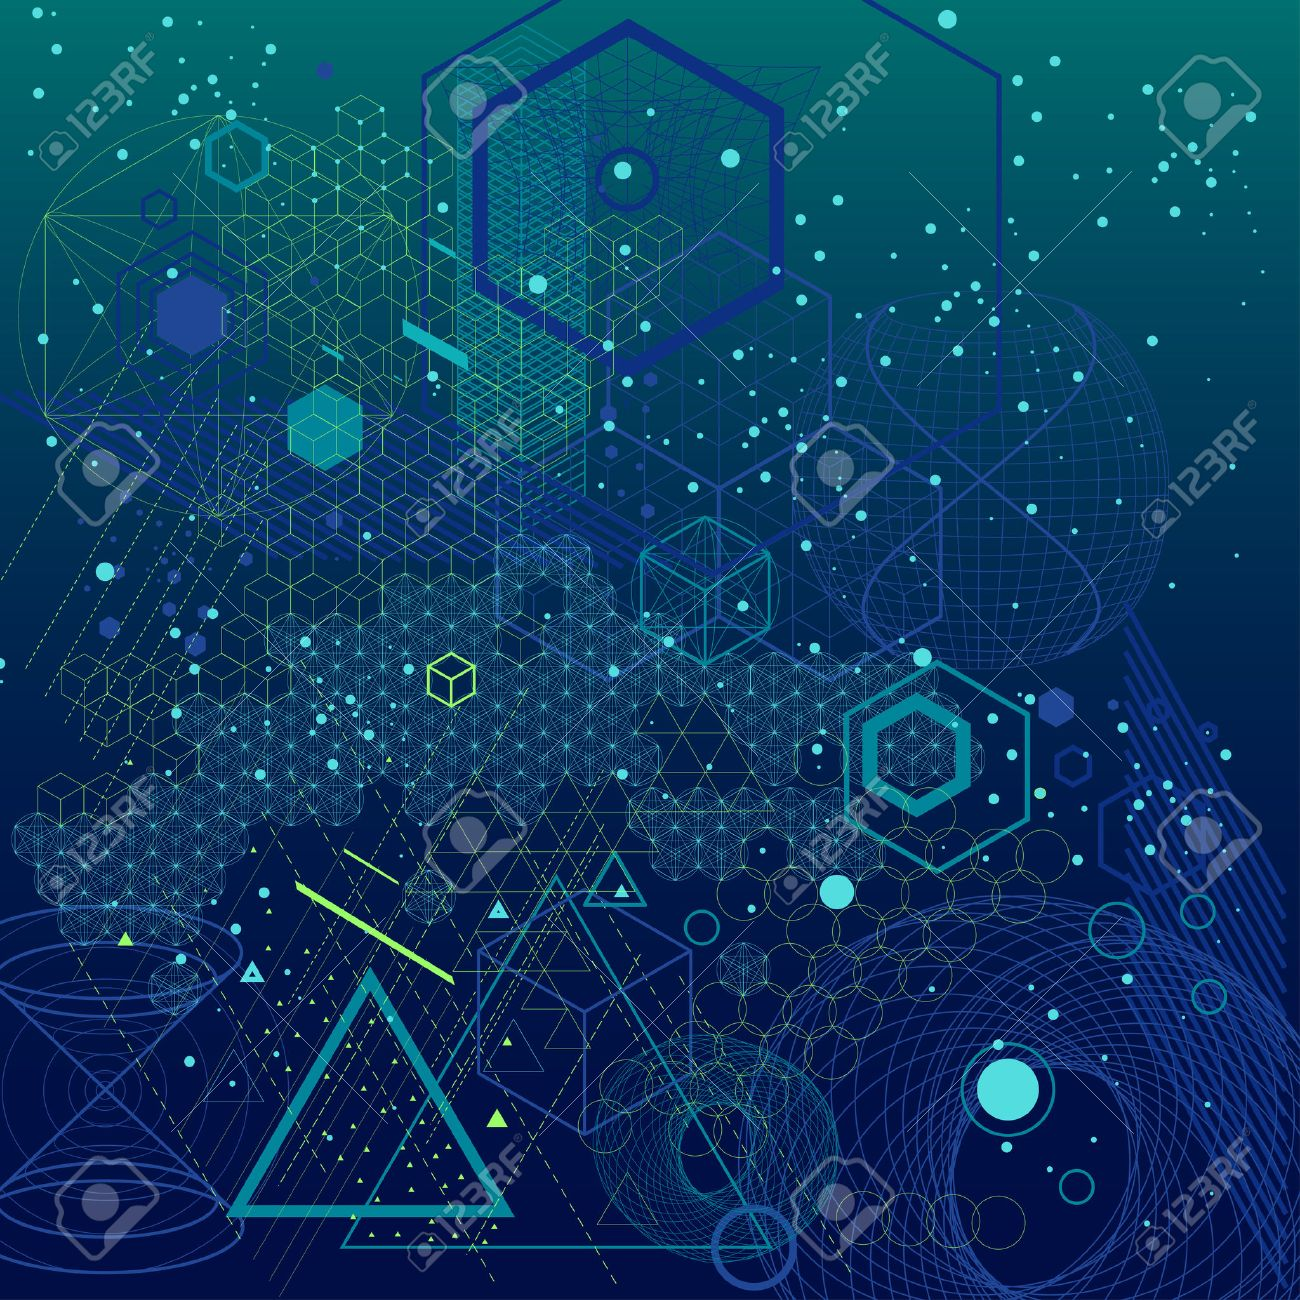 Sacred geometry symbols and elements background. Cosmic, universe, bing bang, alchemy, religion, philosophy, astrology, science, physics, chemistry and spirituality themes - 52498659